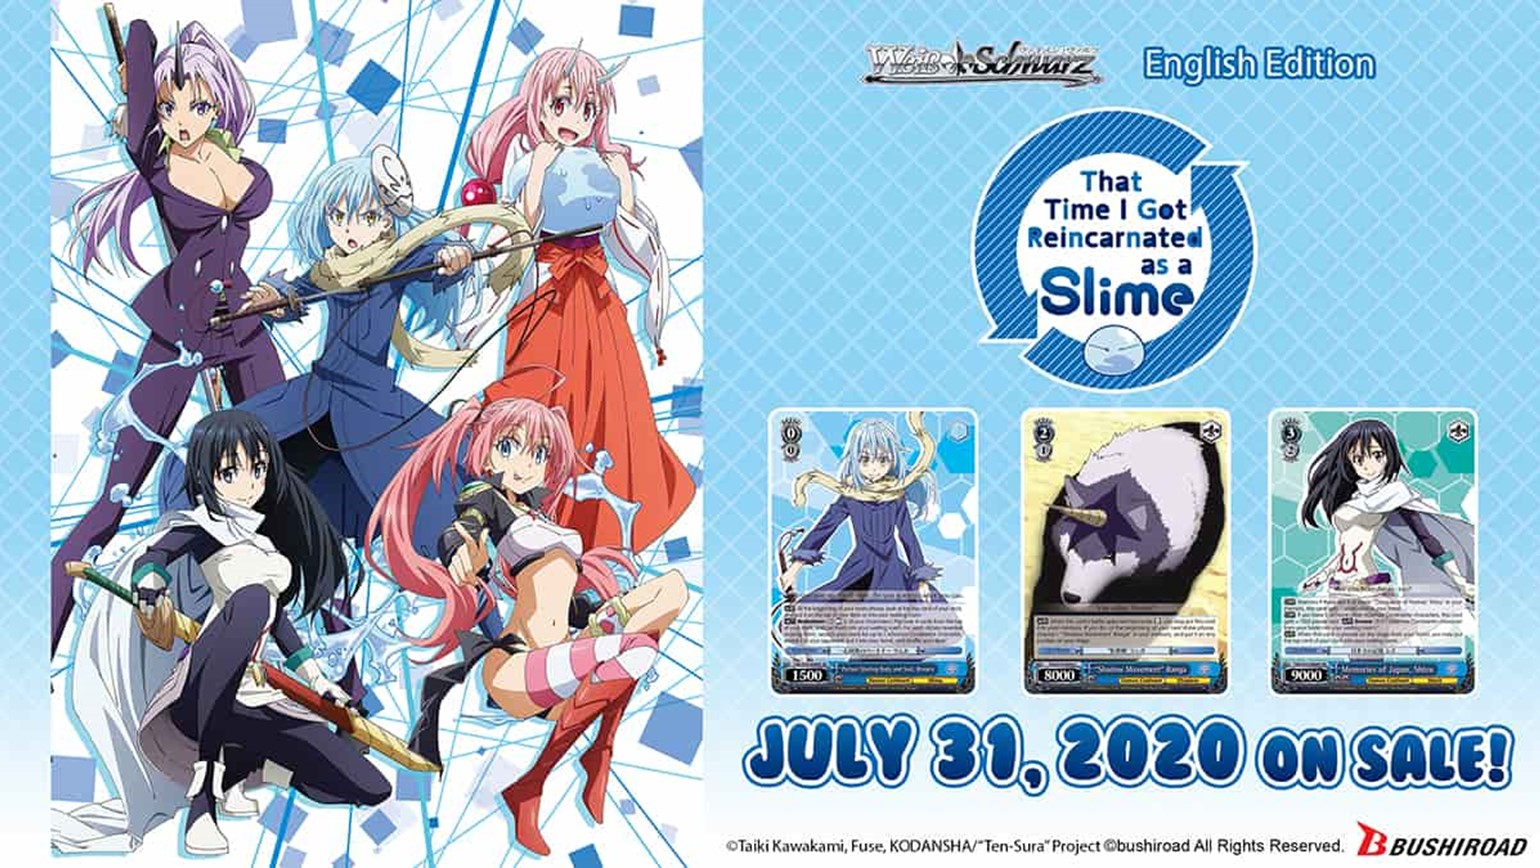 Weiss Schwarz: That Time I Got Reincarnated as a Slime Coming July 31st